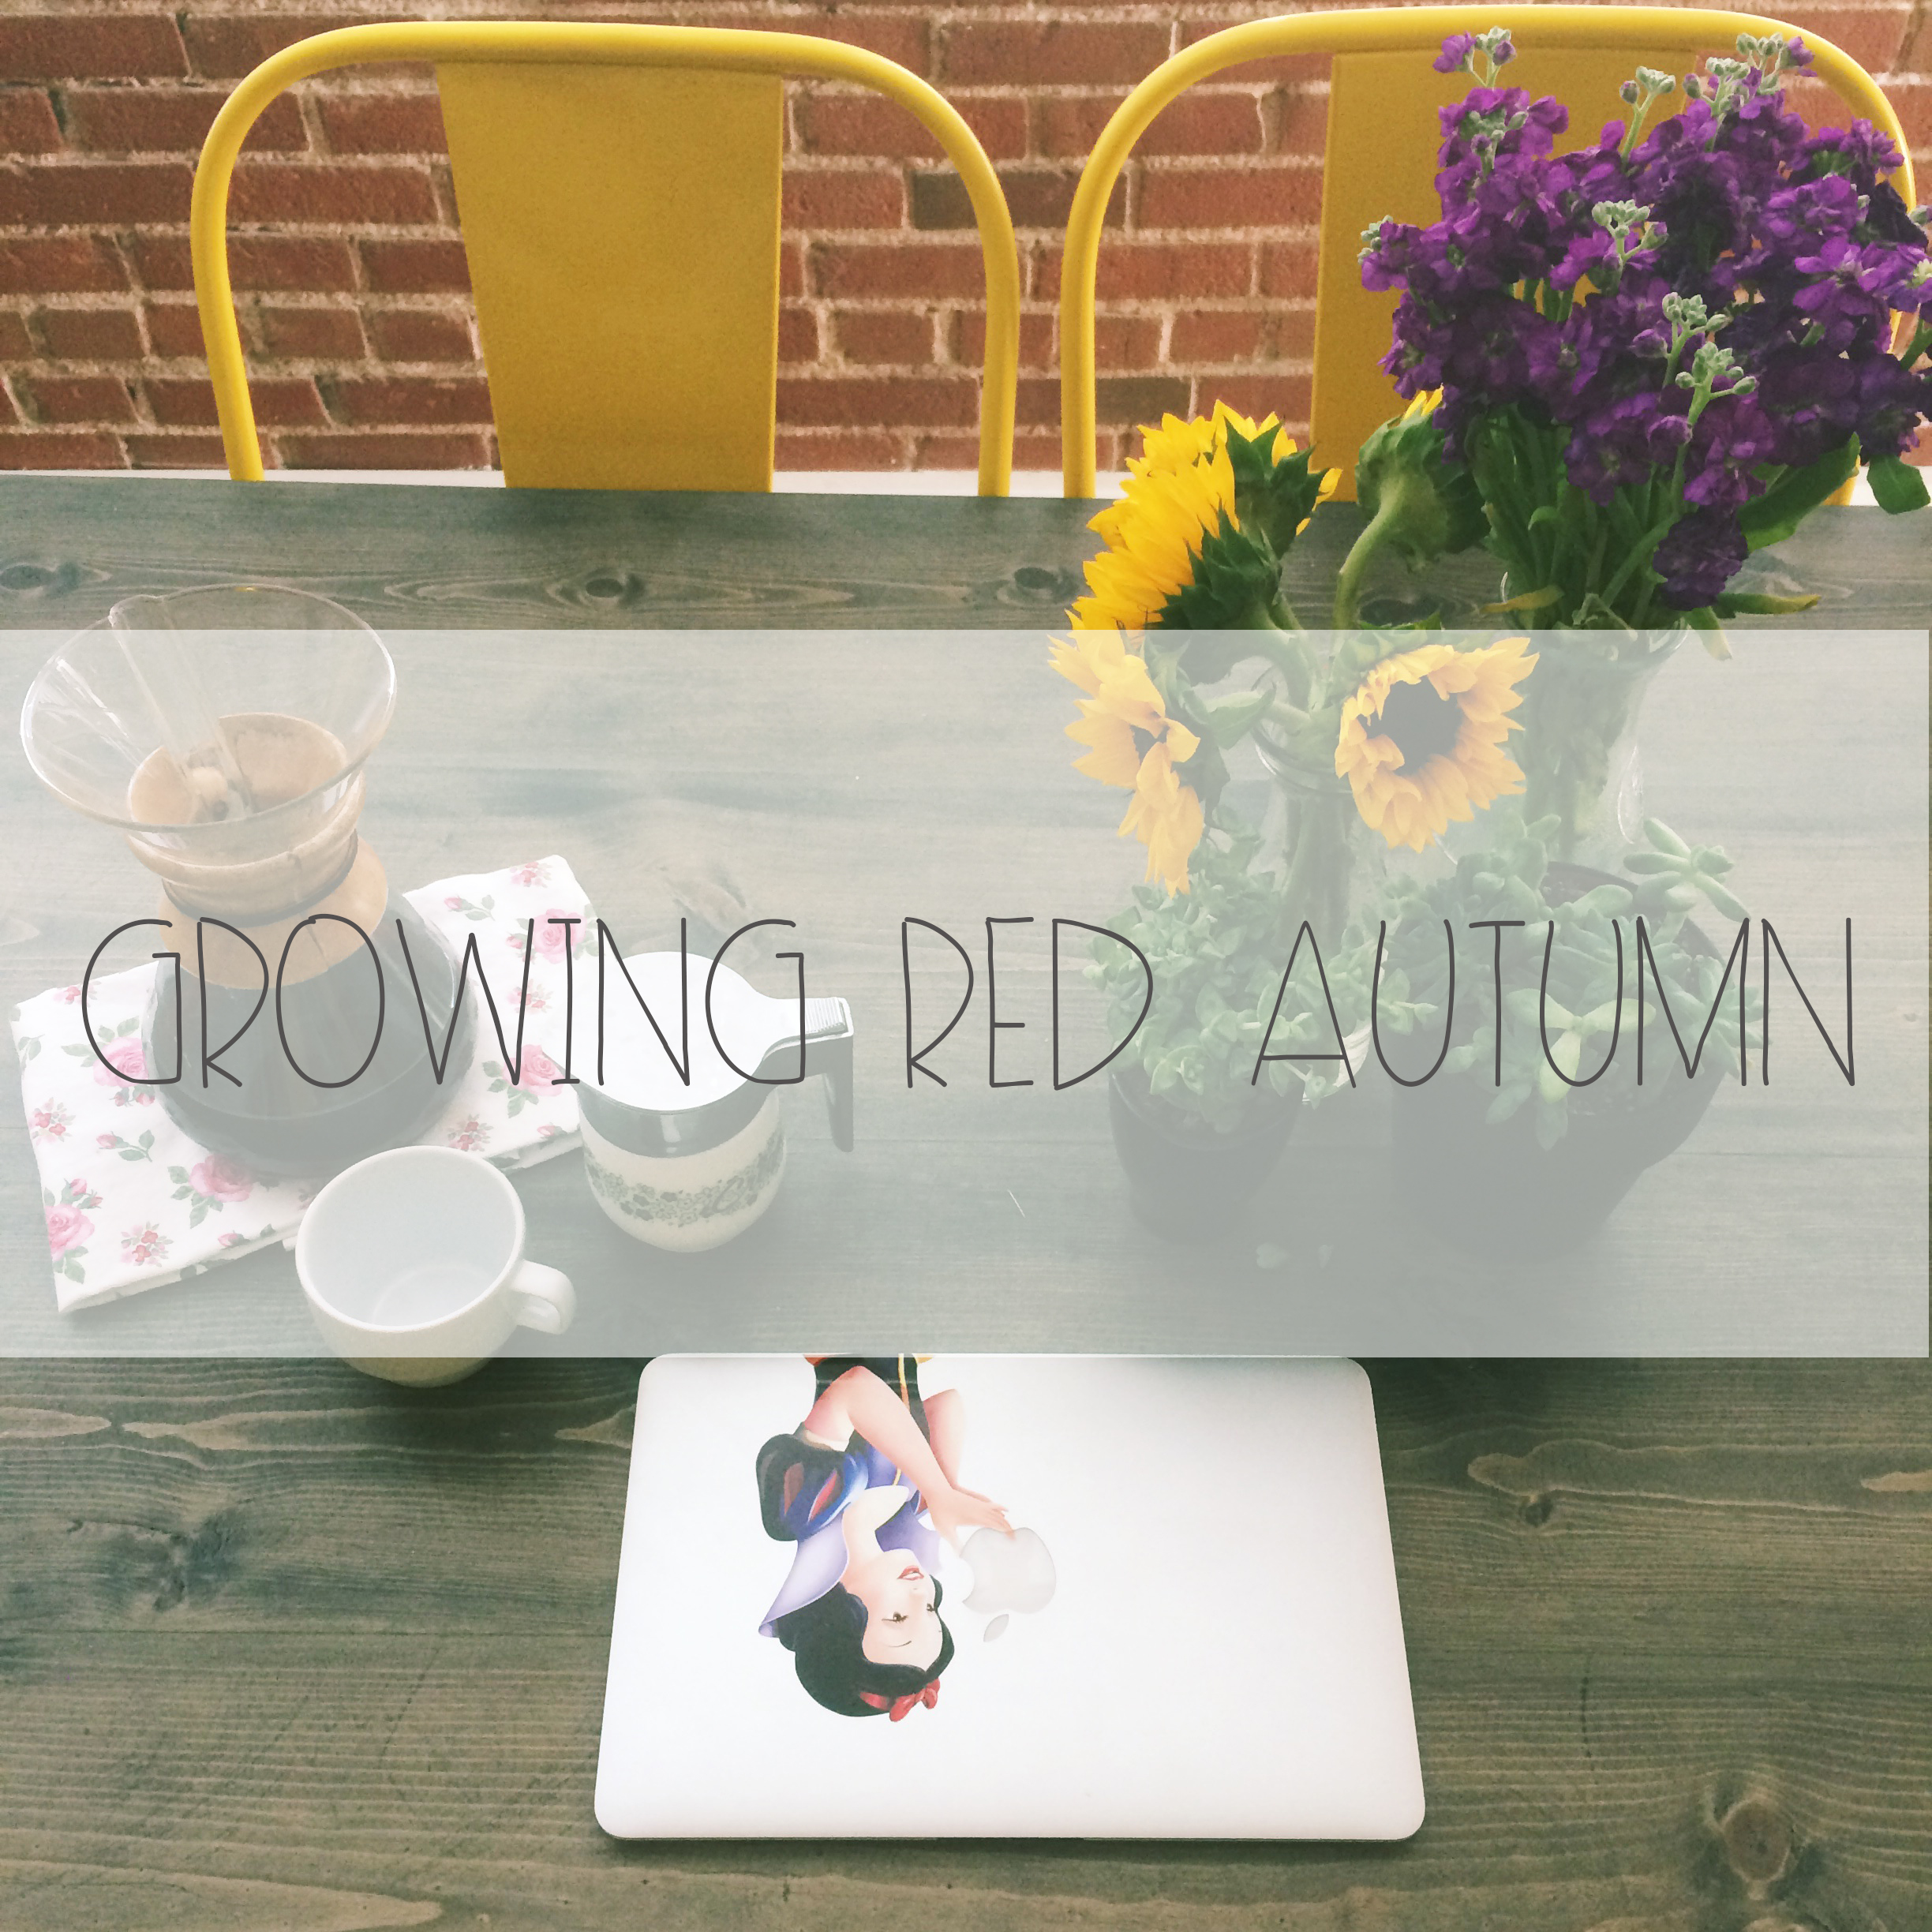 Growing Red Autumn | Red Autumn